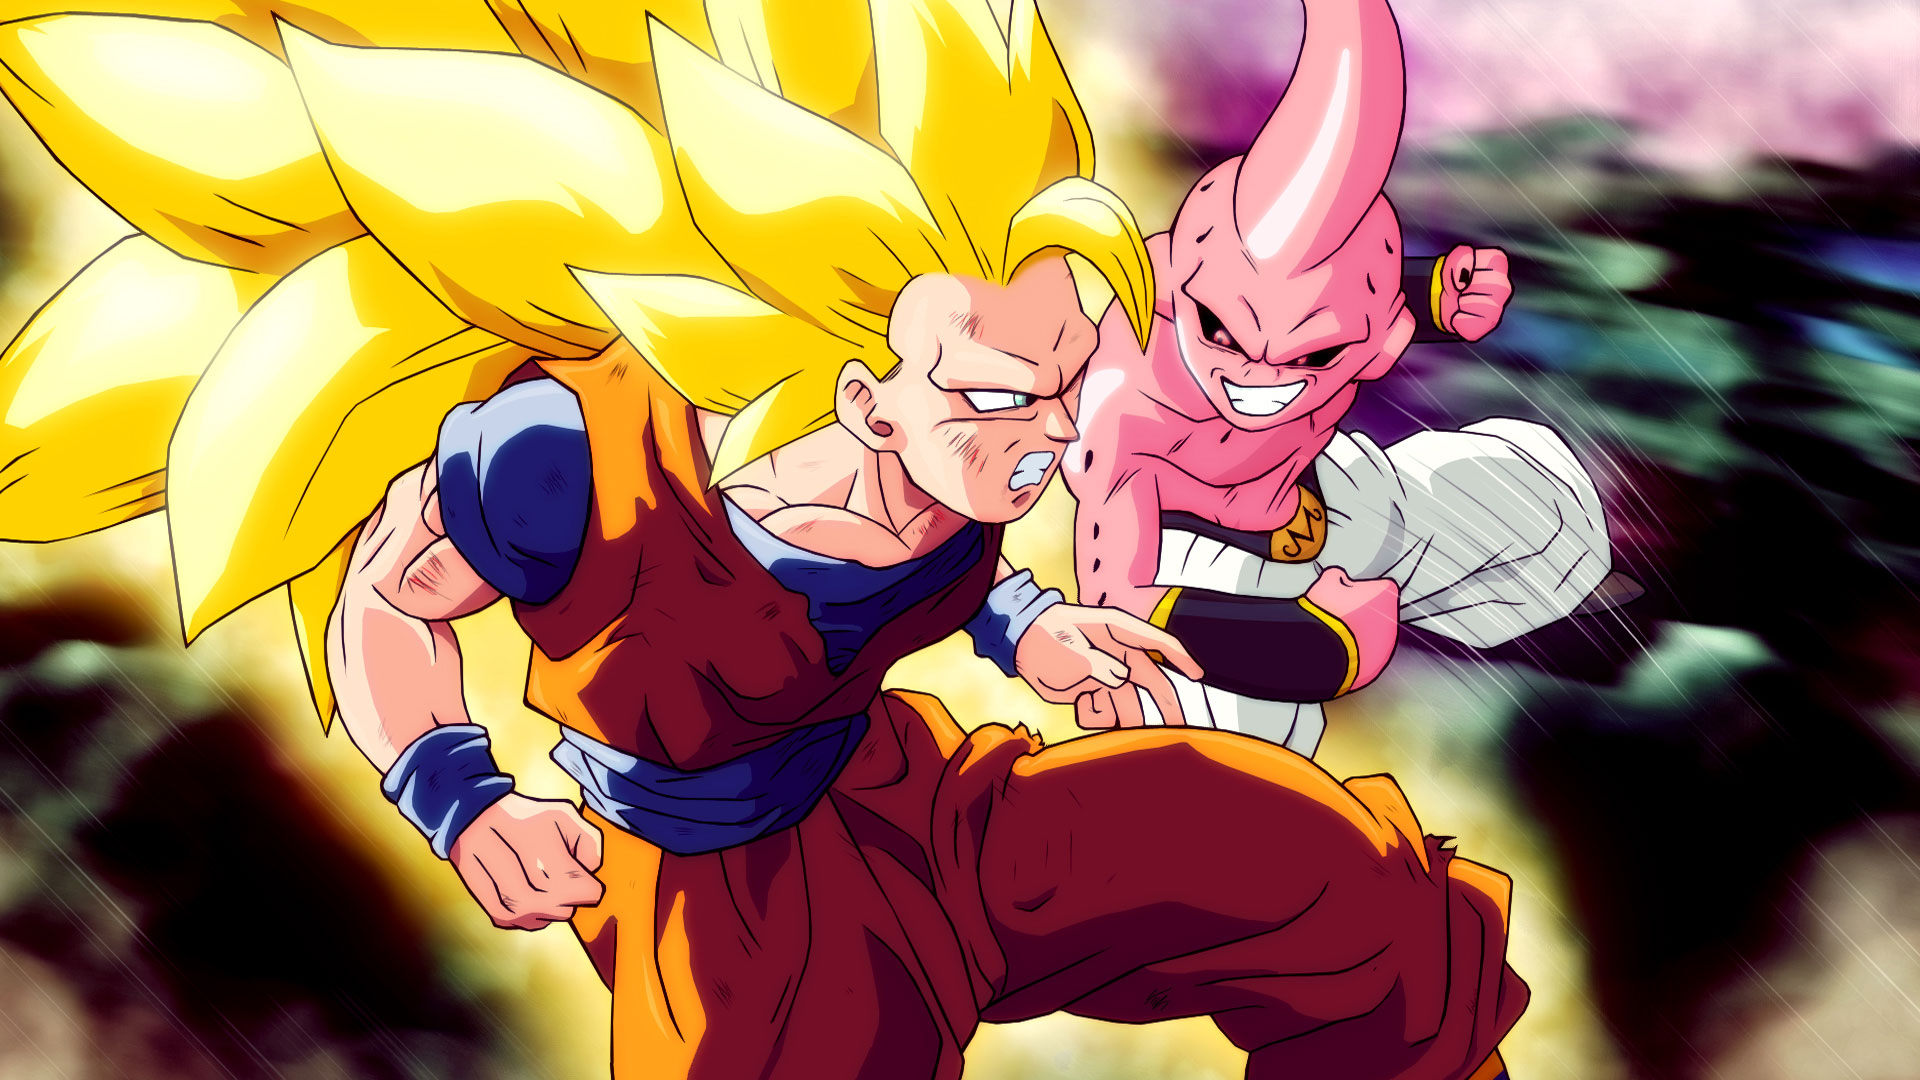 Goku Super Saiyan 3 Vs Kid Buu Ps4wallpapers Com